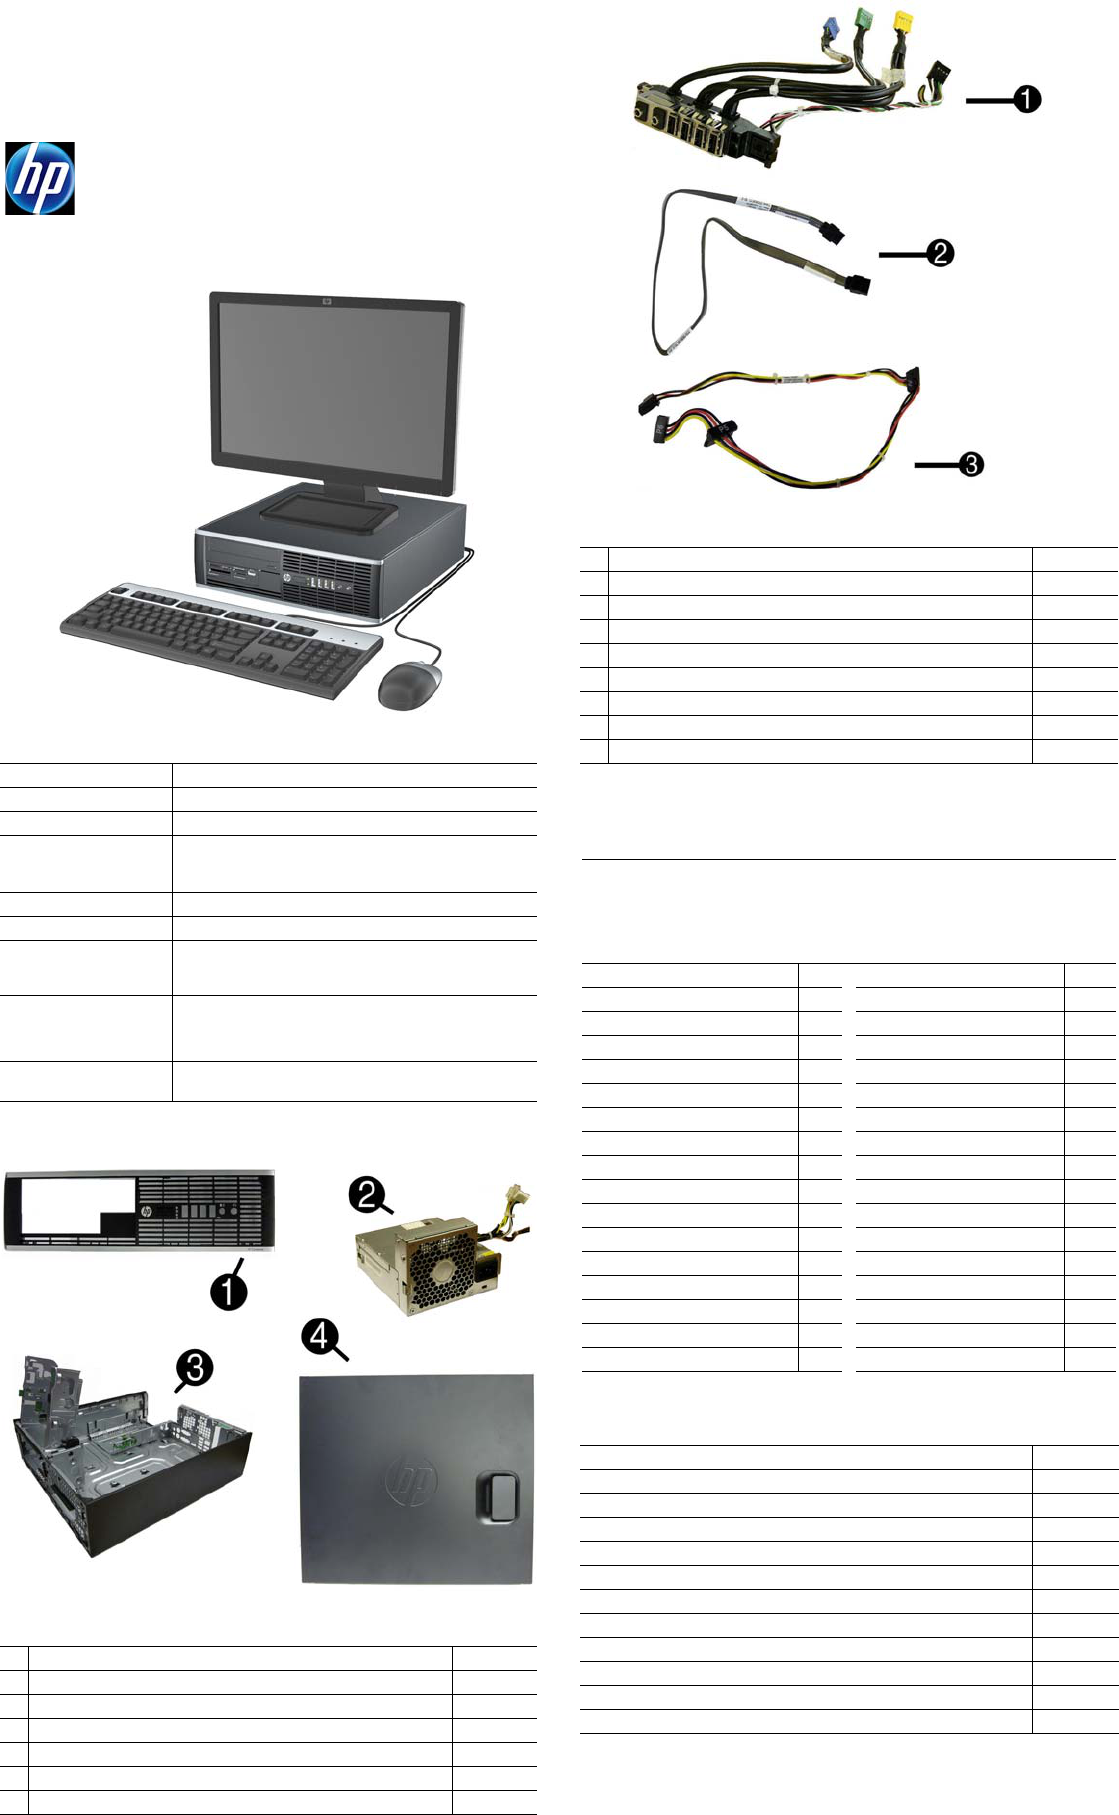 HP Compaq 8300 Elite, SFF Chassis 690358-001 Illustrated Parts